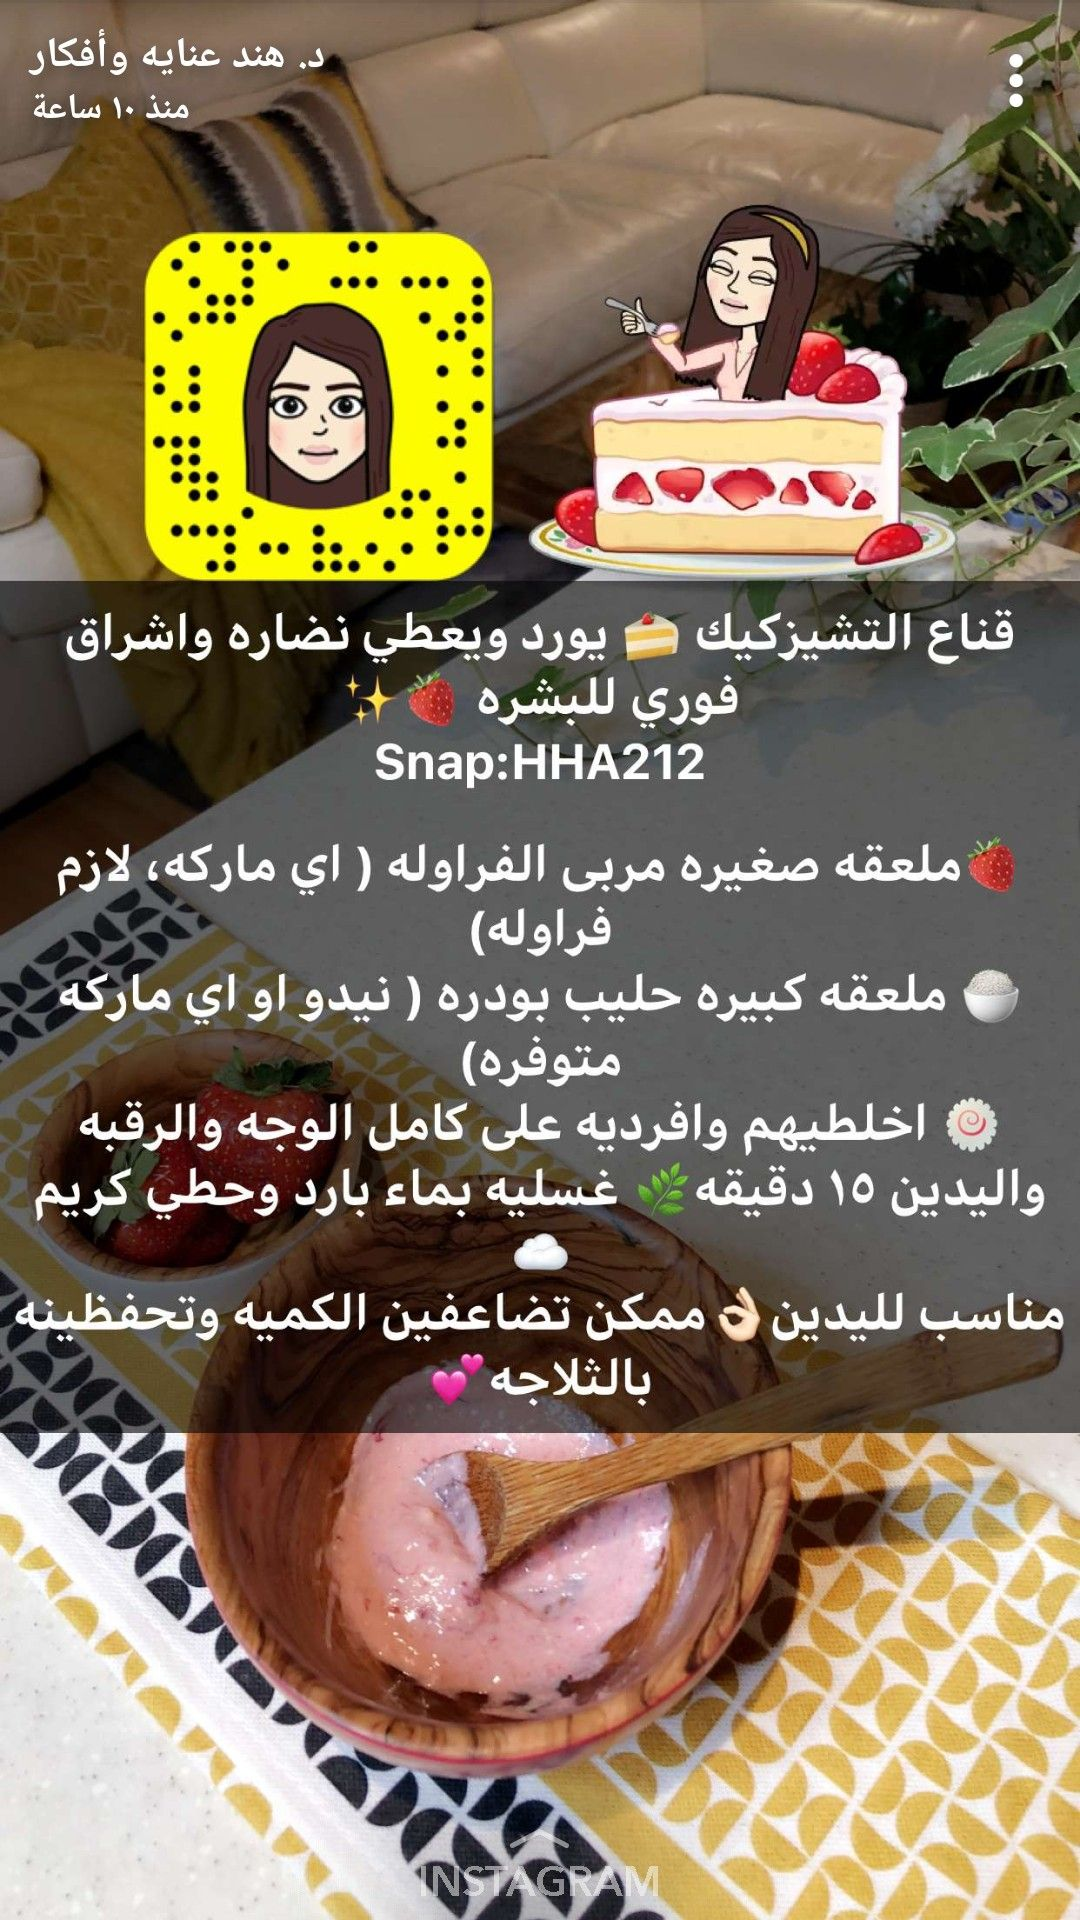 Pin By وهم On د هند عنايه وأفكار Professional Skin Care Products Health Skin Care Hair Care Recipes